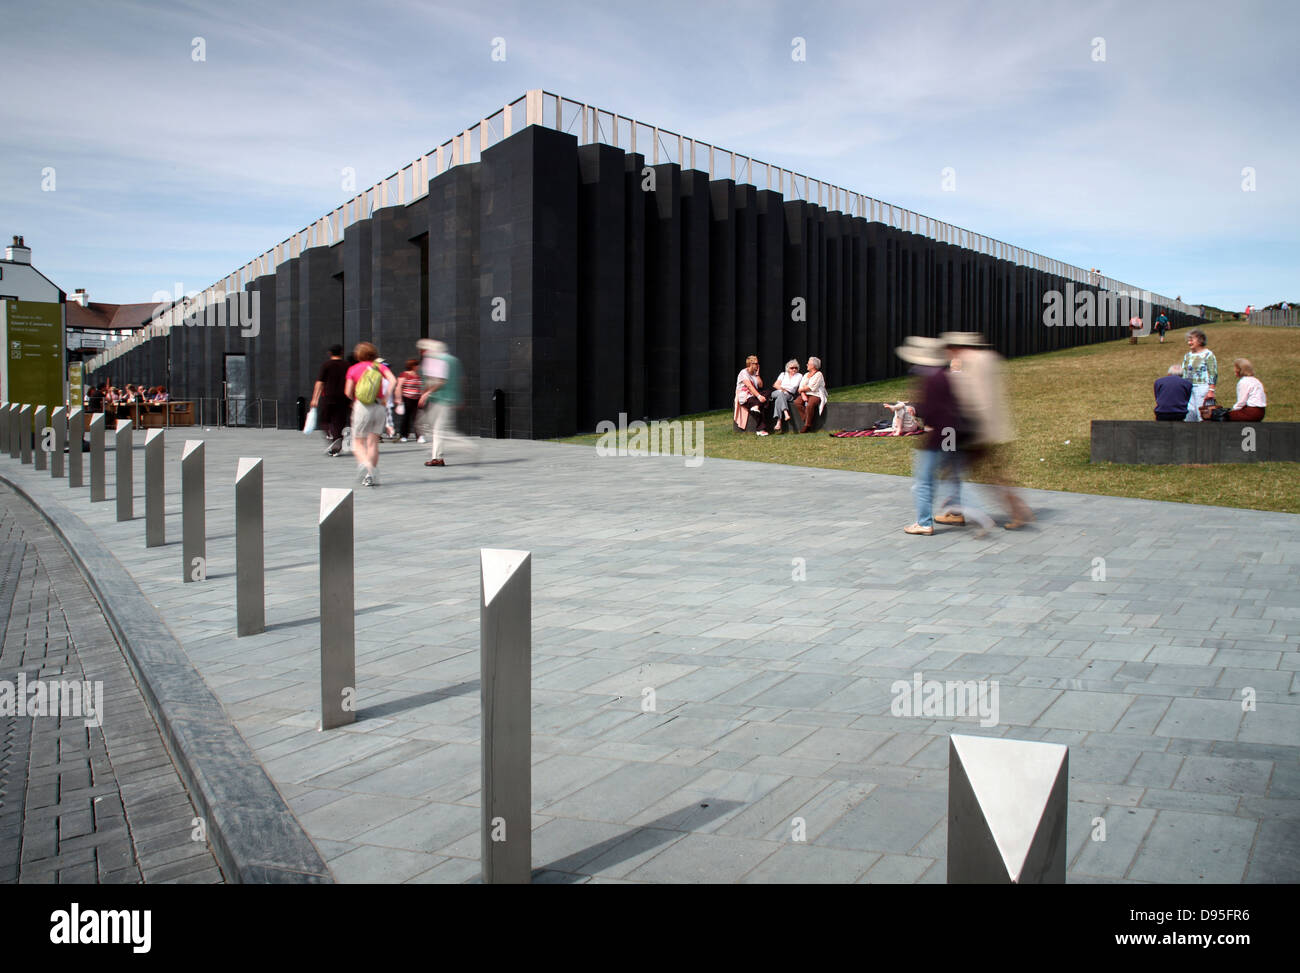 Tourists at Giants Causeway Visitor Centre - Stock Image